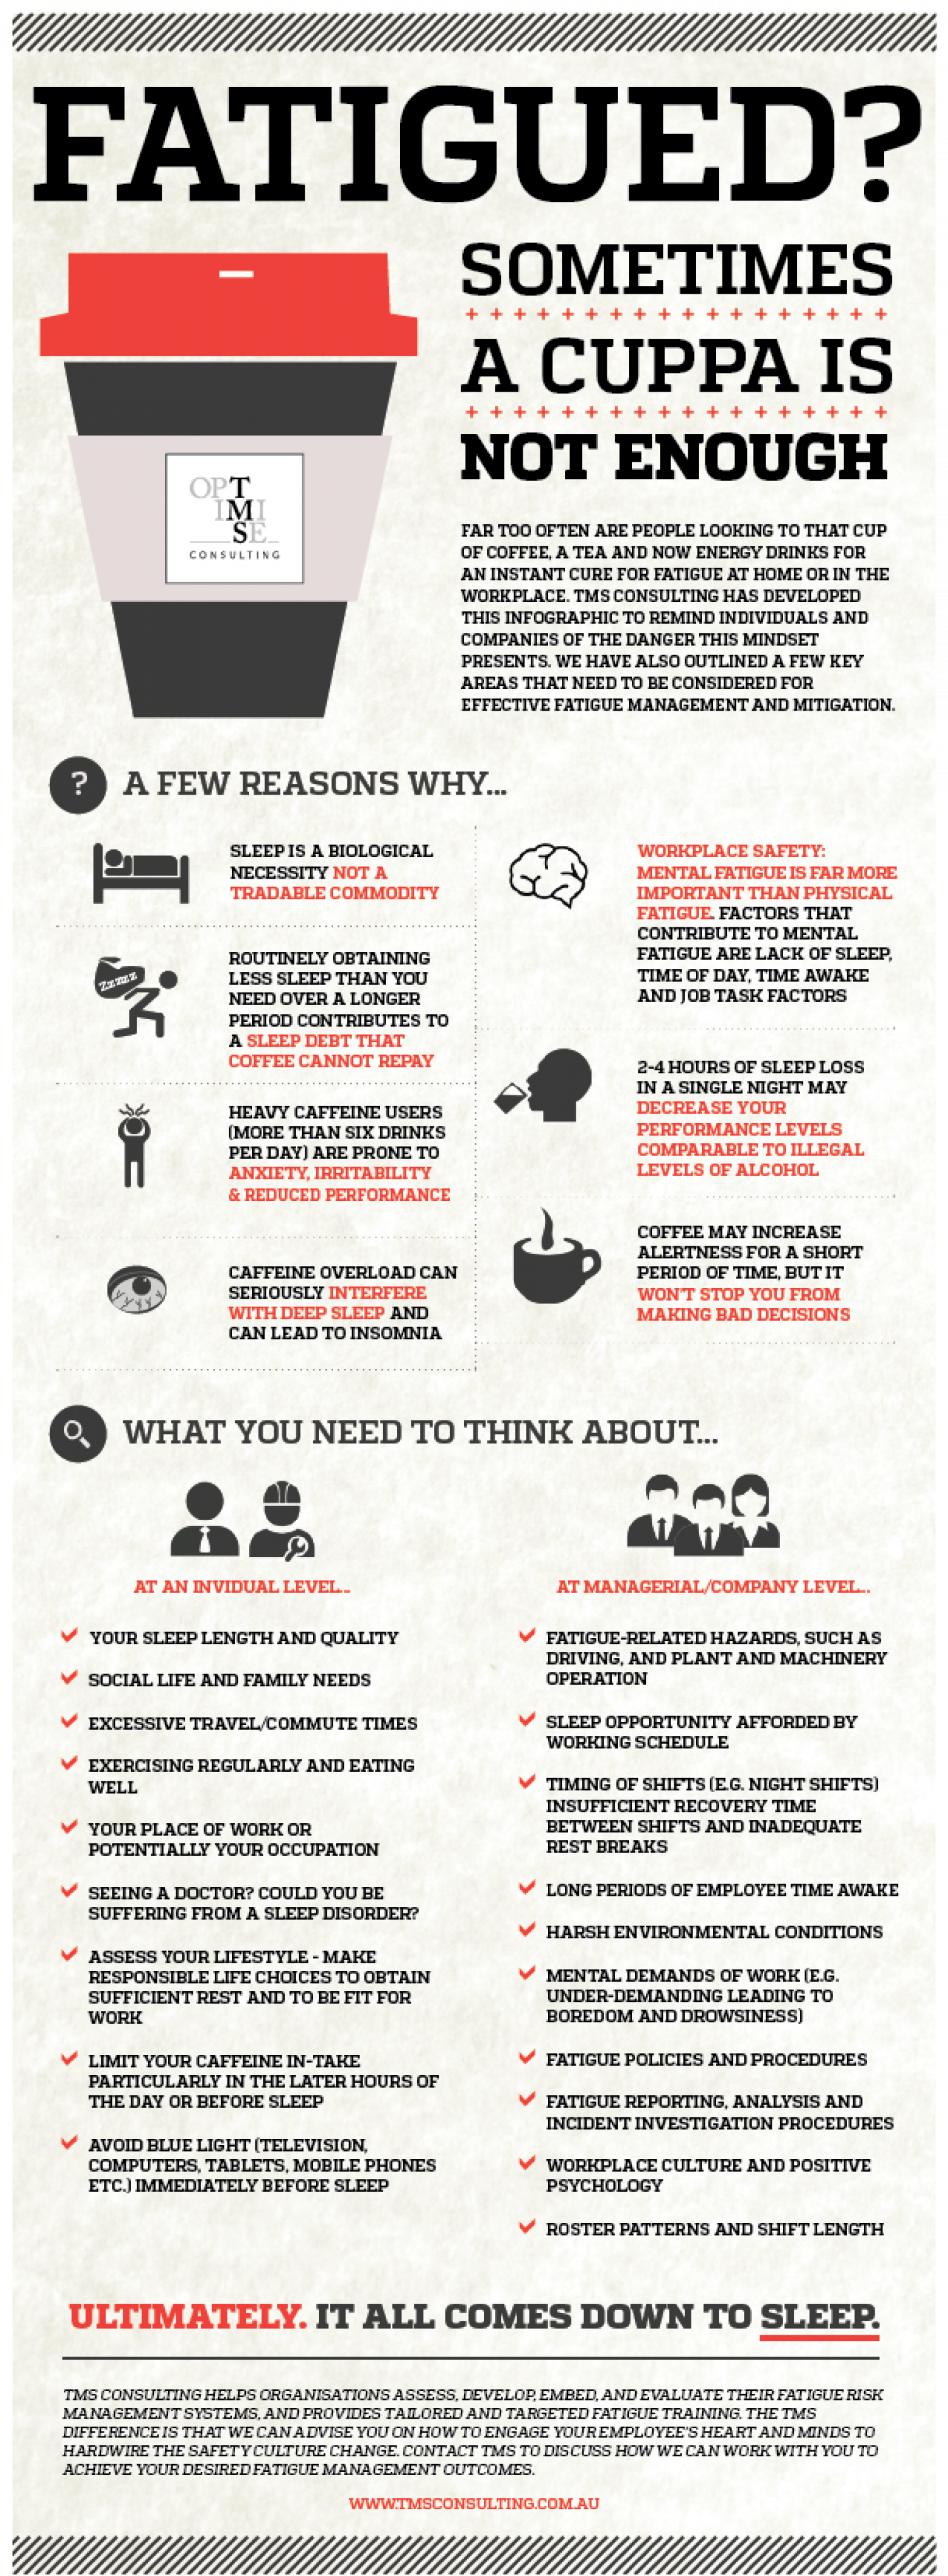 Fatigued? Sometimes a cuppa is not enough... Infographic